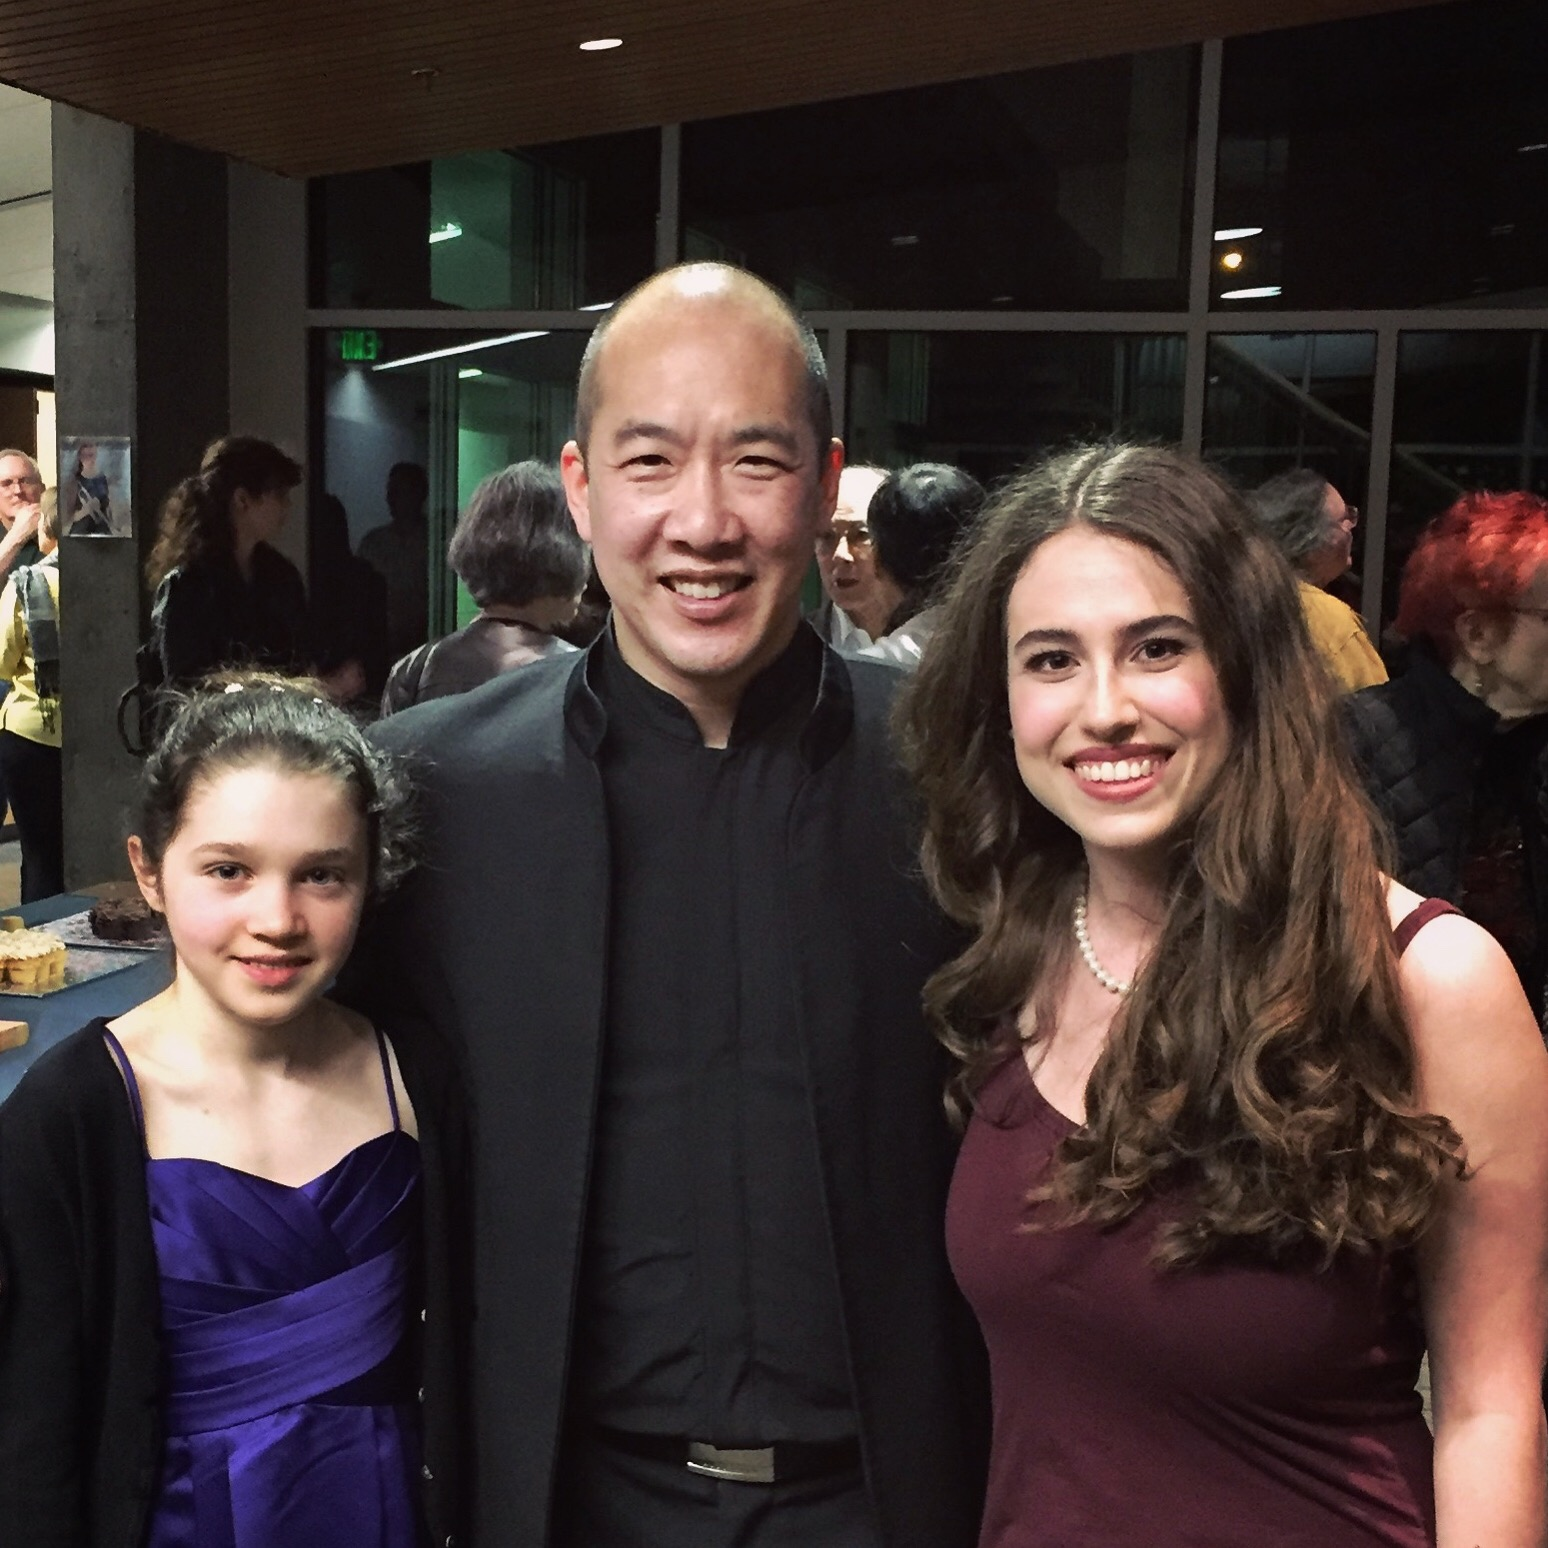 Angela Rose Padula, Morgan Paige, and Kelly Kuo - YSC 2019 Soloists with Artistic Director Kelly Kuo after the May 2019